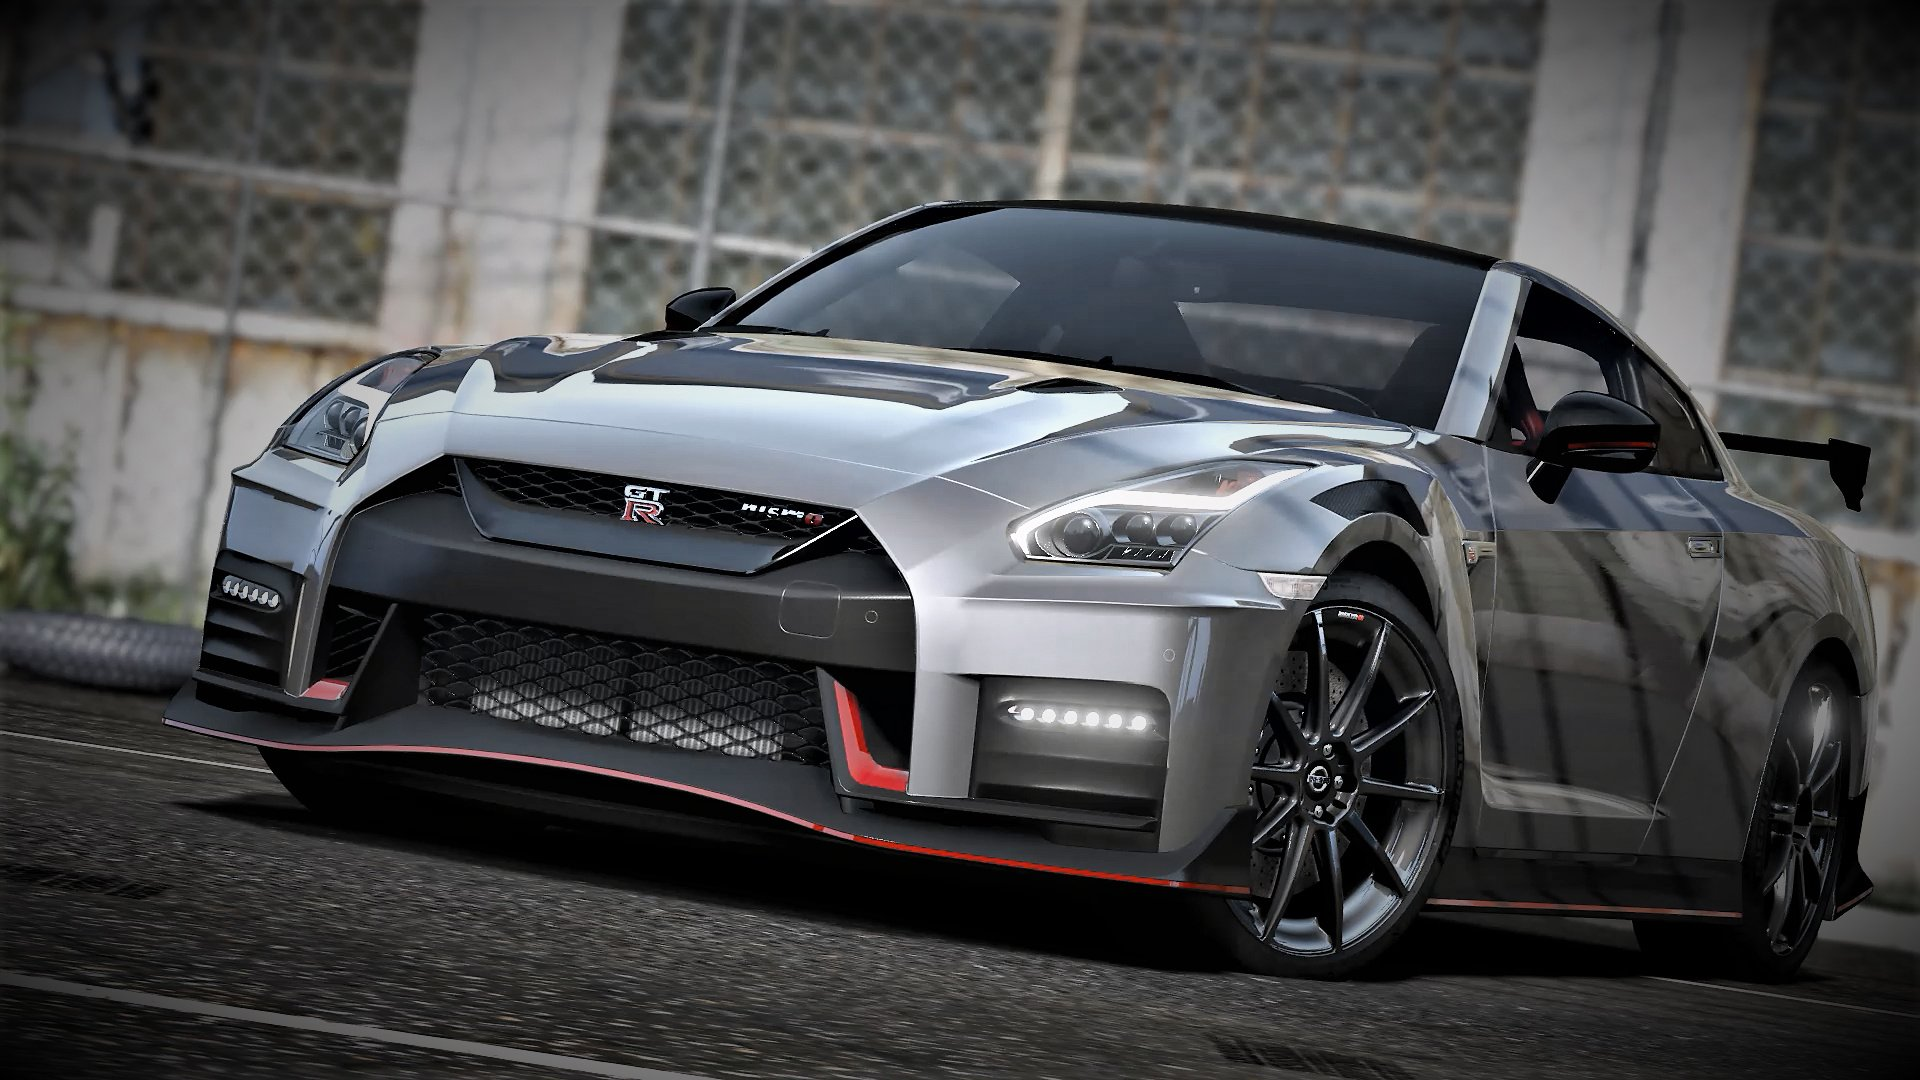 2020 Nissan Gt R Nismo Exterior and Interior